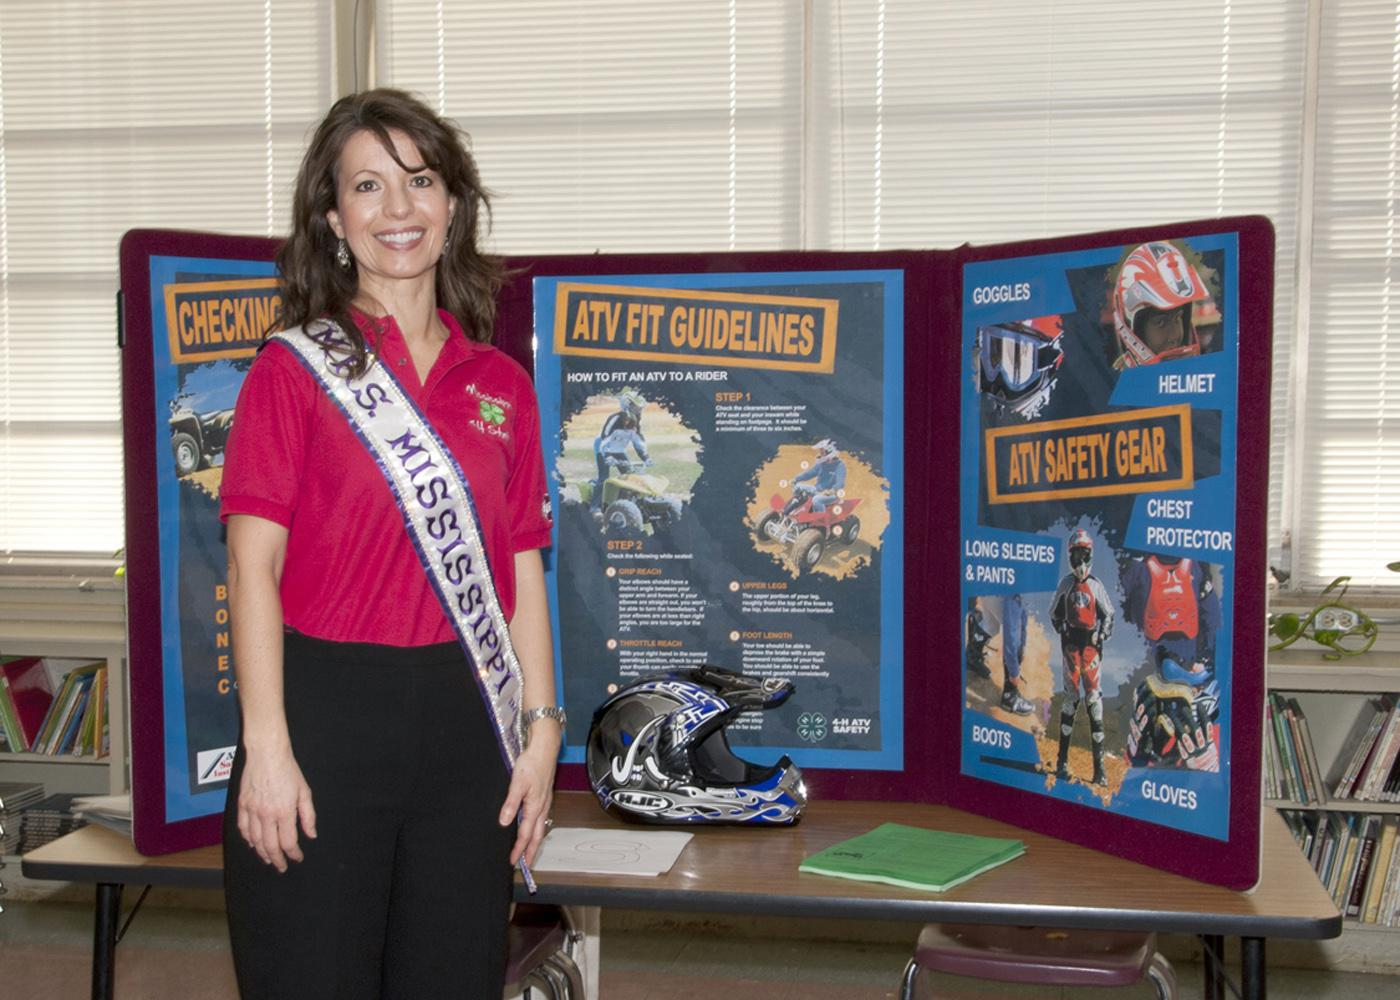 Traci Mongeon, Mrs. Mississippi and Choctaw County 4-H agent, will compete in the Mrs. International pageant in July. She promotes 4-H and ATV safety as her platform. (Photo by Kat Lawrence)